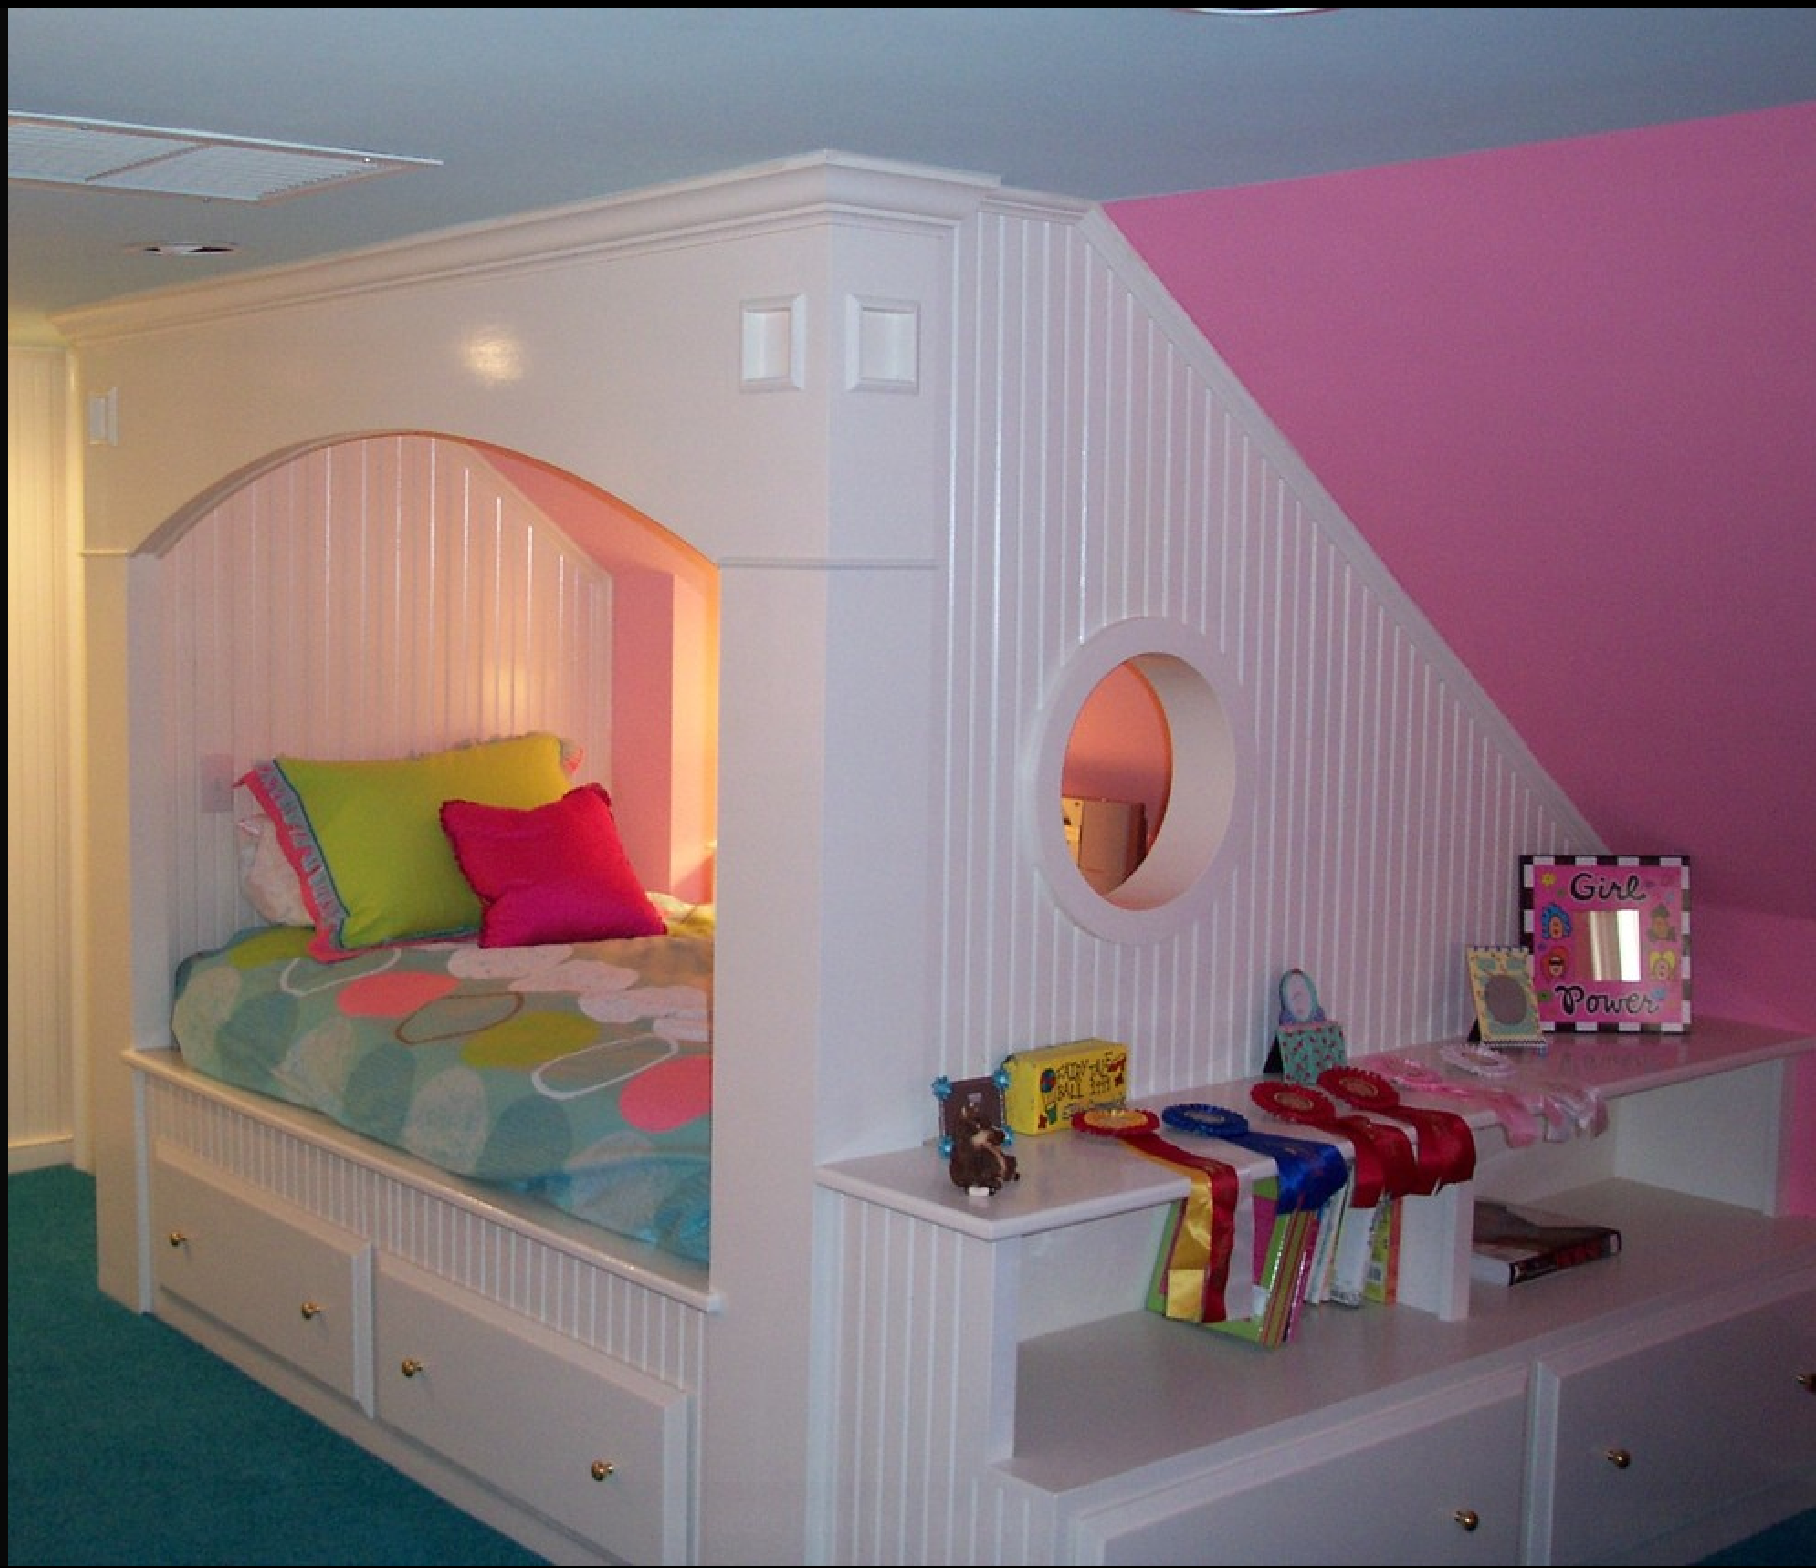 LOVELY SHAPED CUPBOARD BED. PORT HOLE WINDOW OPENING